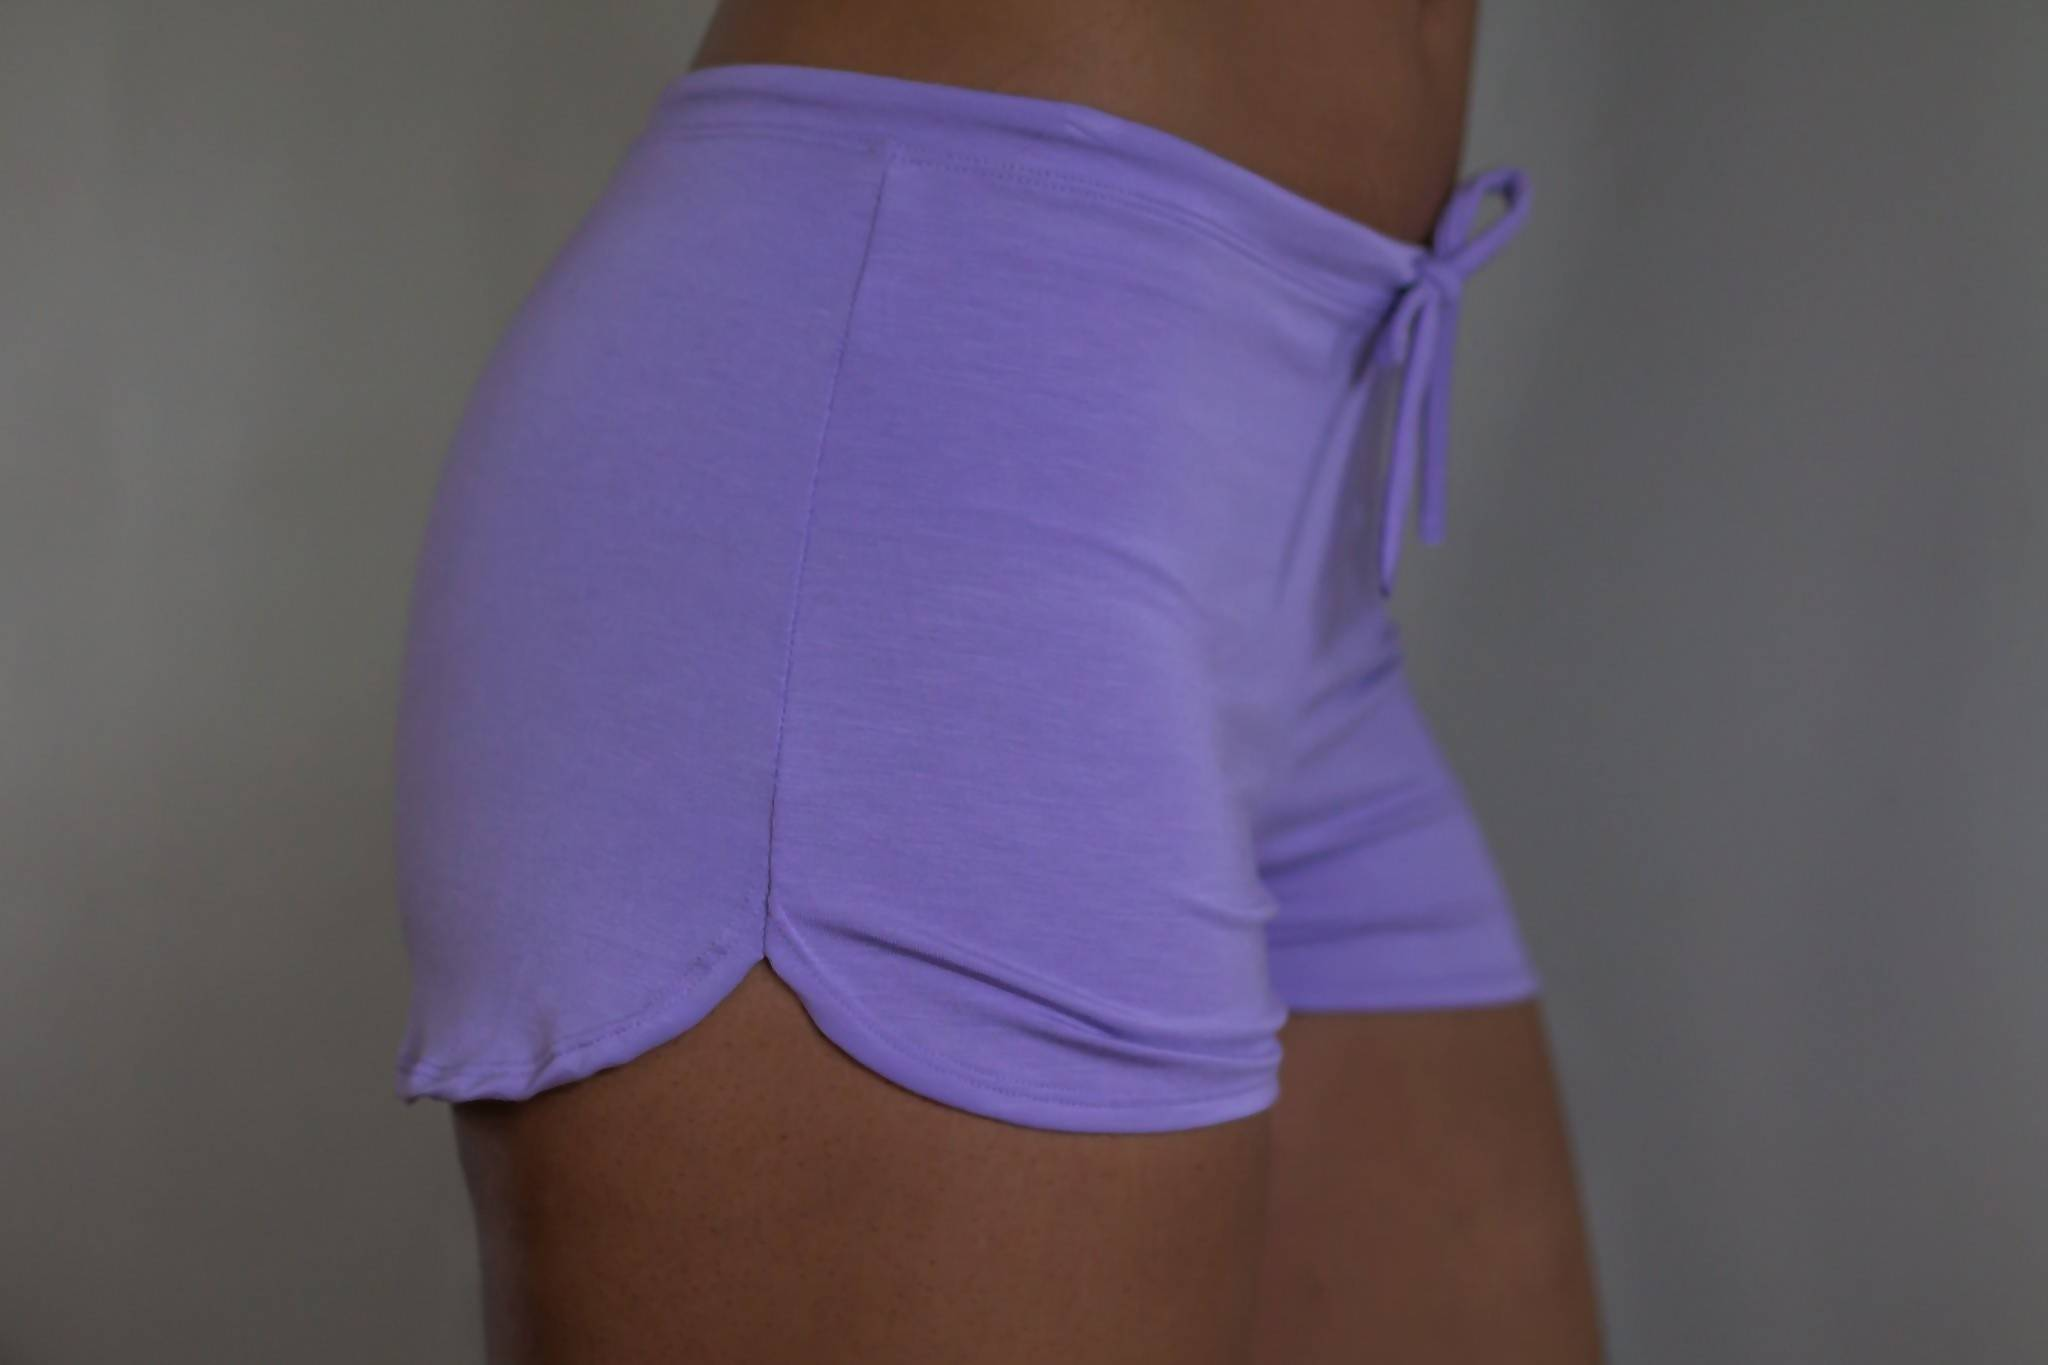 The Simone- Bamboo Sleep Short in Lavender